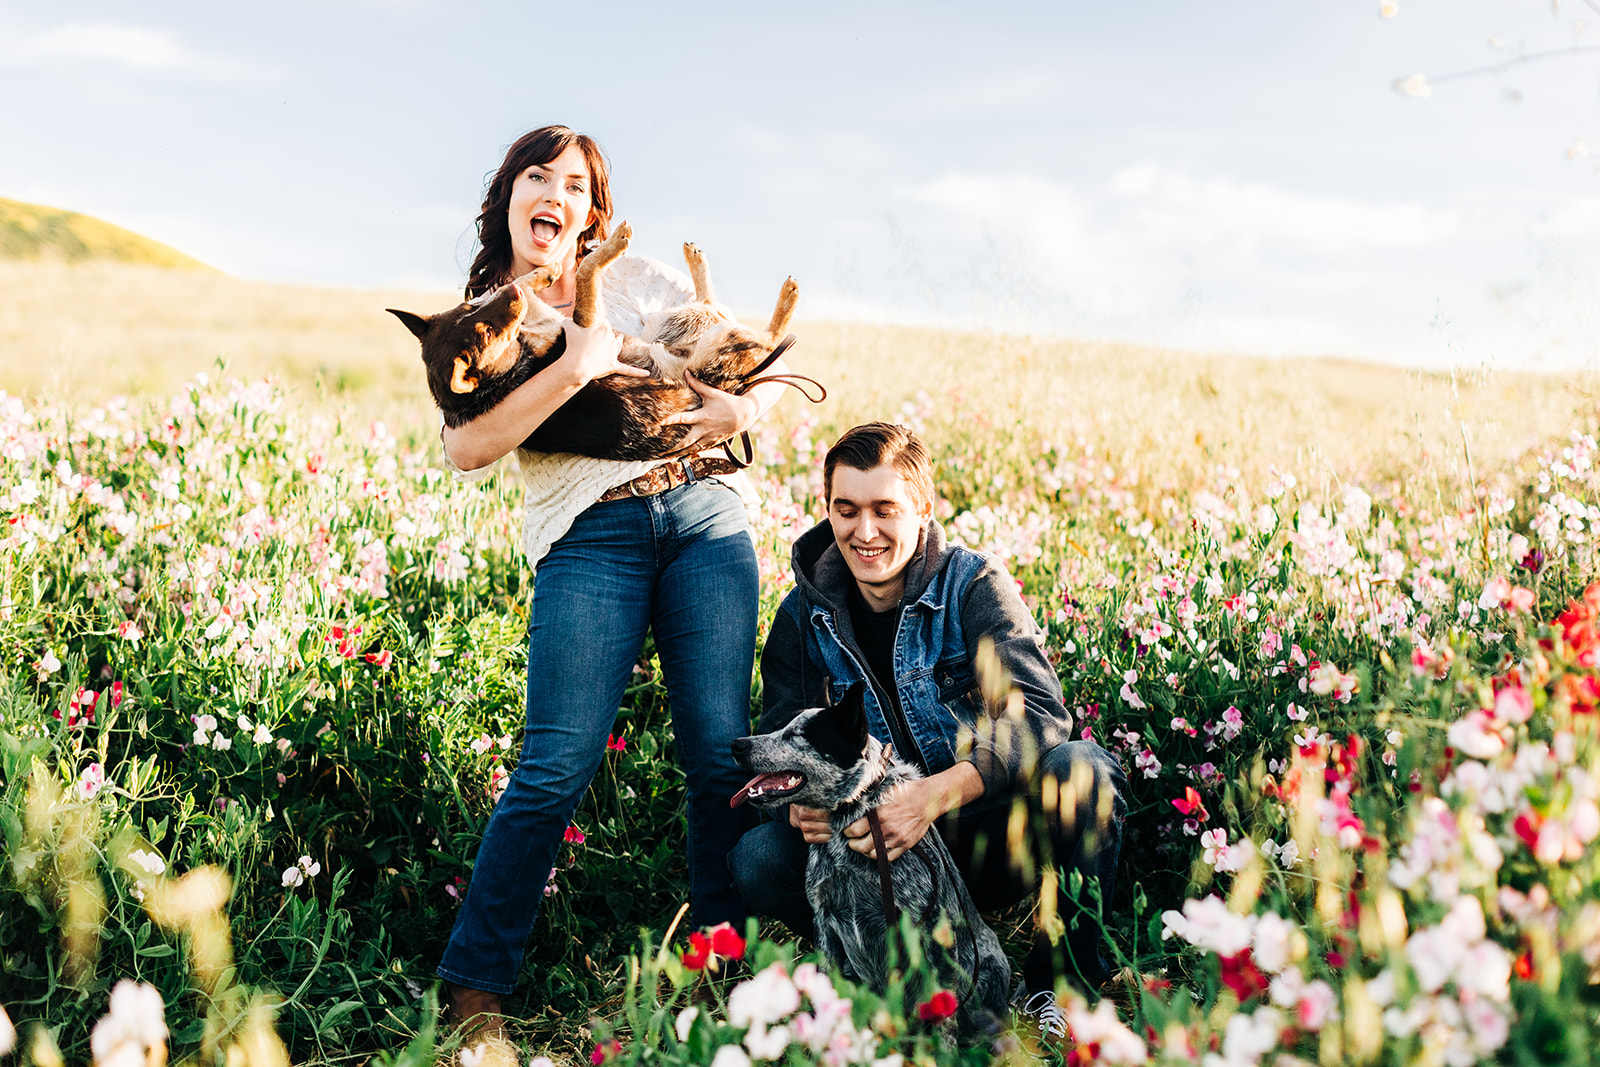 southern-california-sweet-pea-fields-engagement-photos_12.jpg